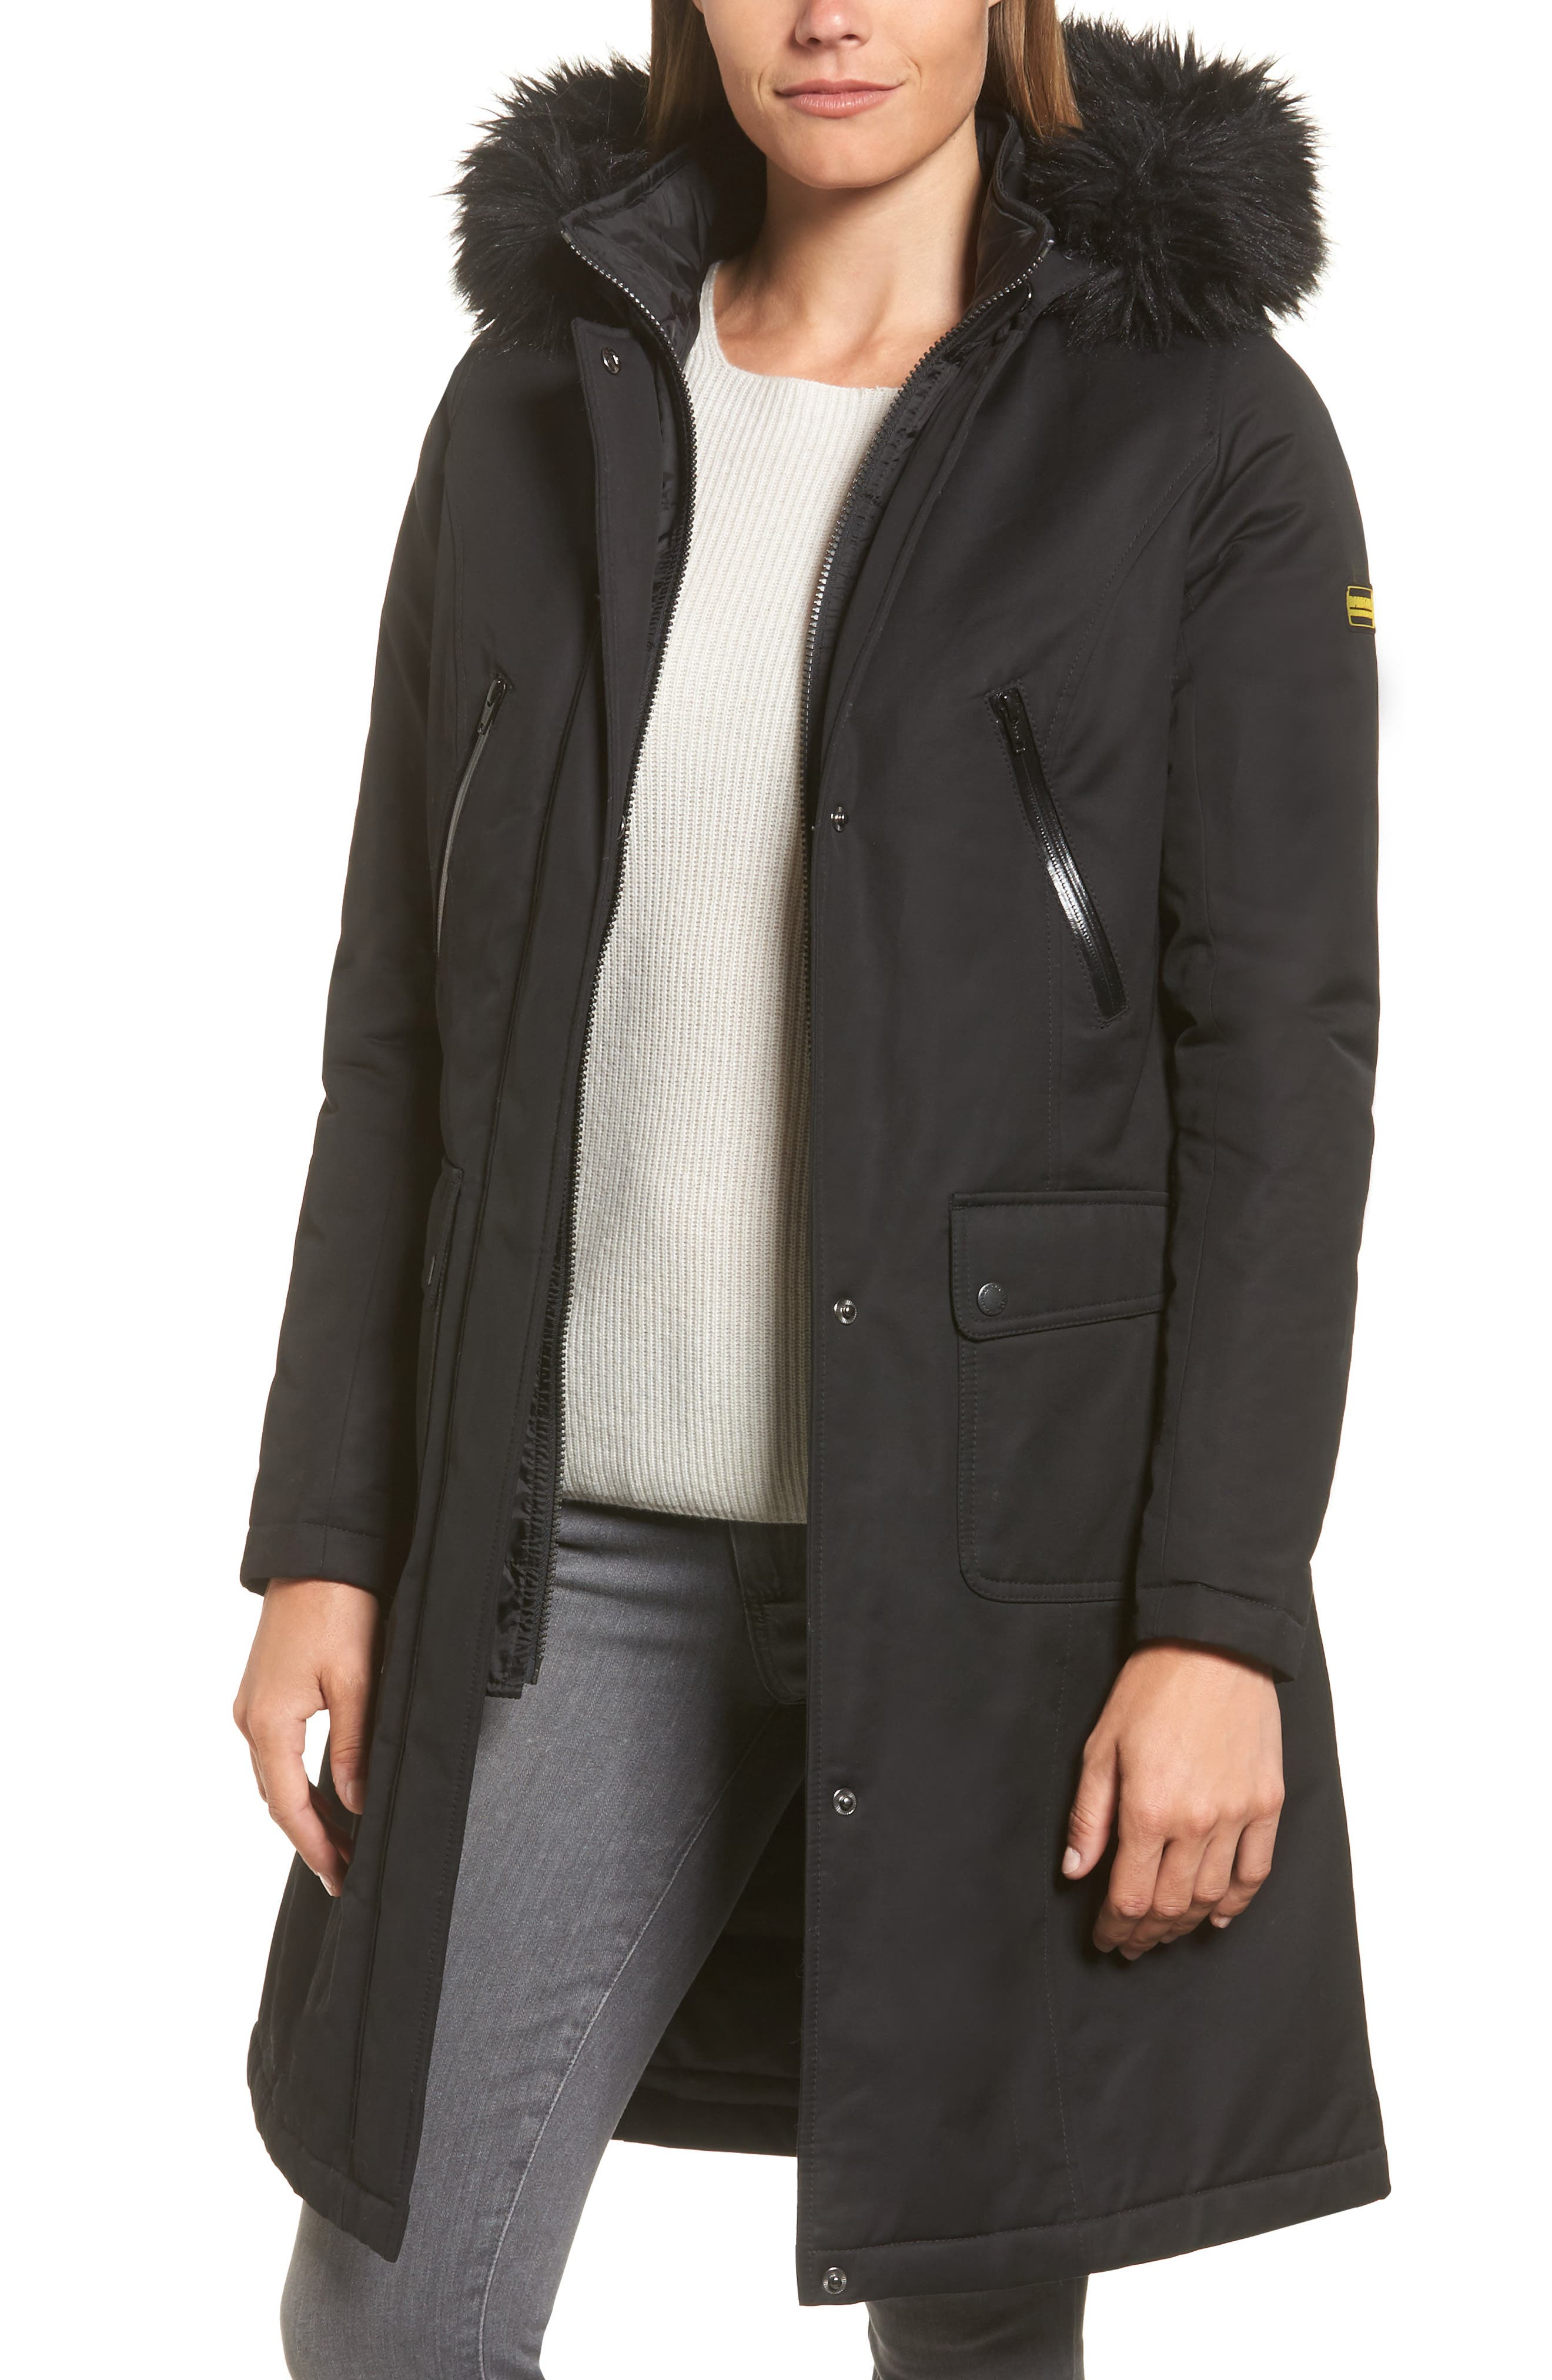 Mondello Hooded Water Resistant Jacket with Faux Fur Trim,                             Main thumbnail 1, color,                             001